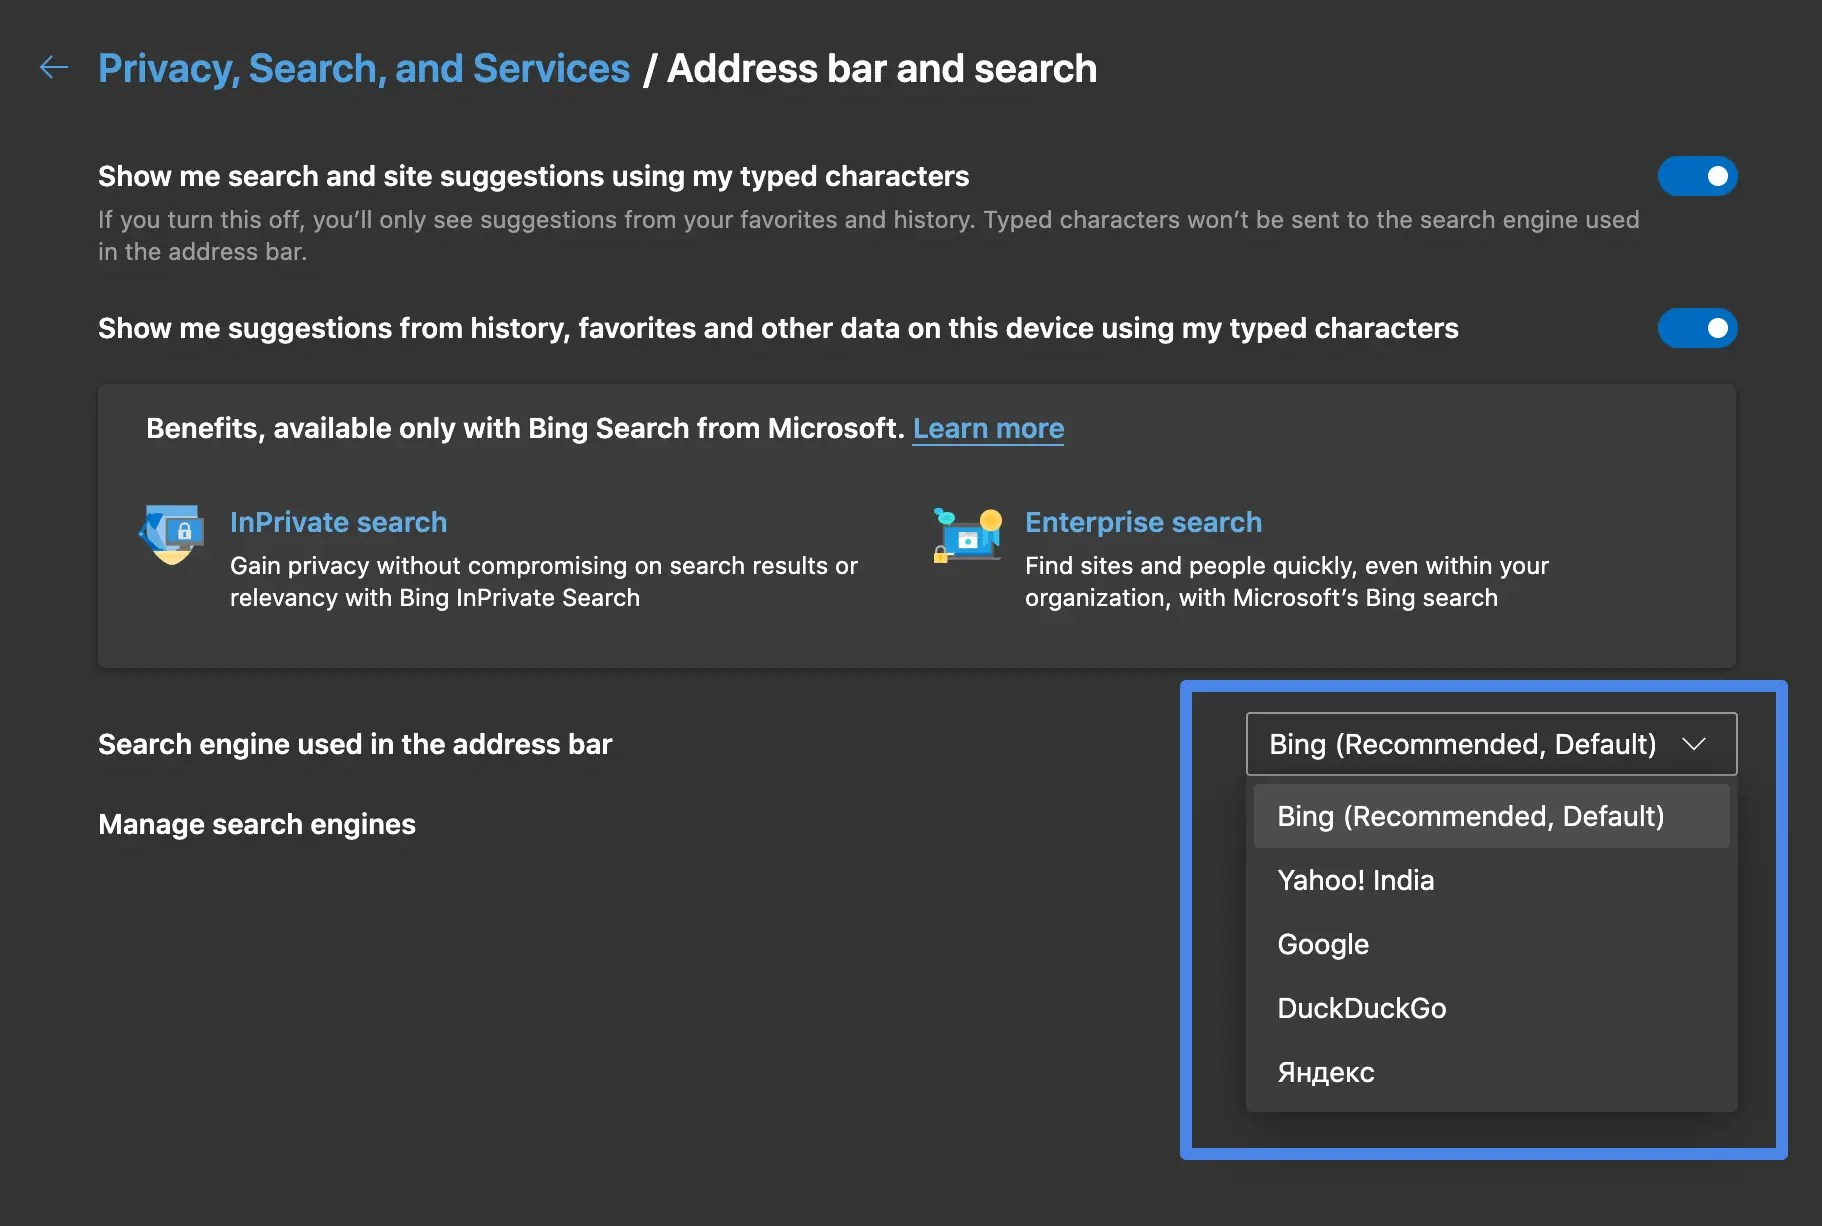 Pick a new default search engine